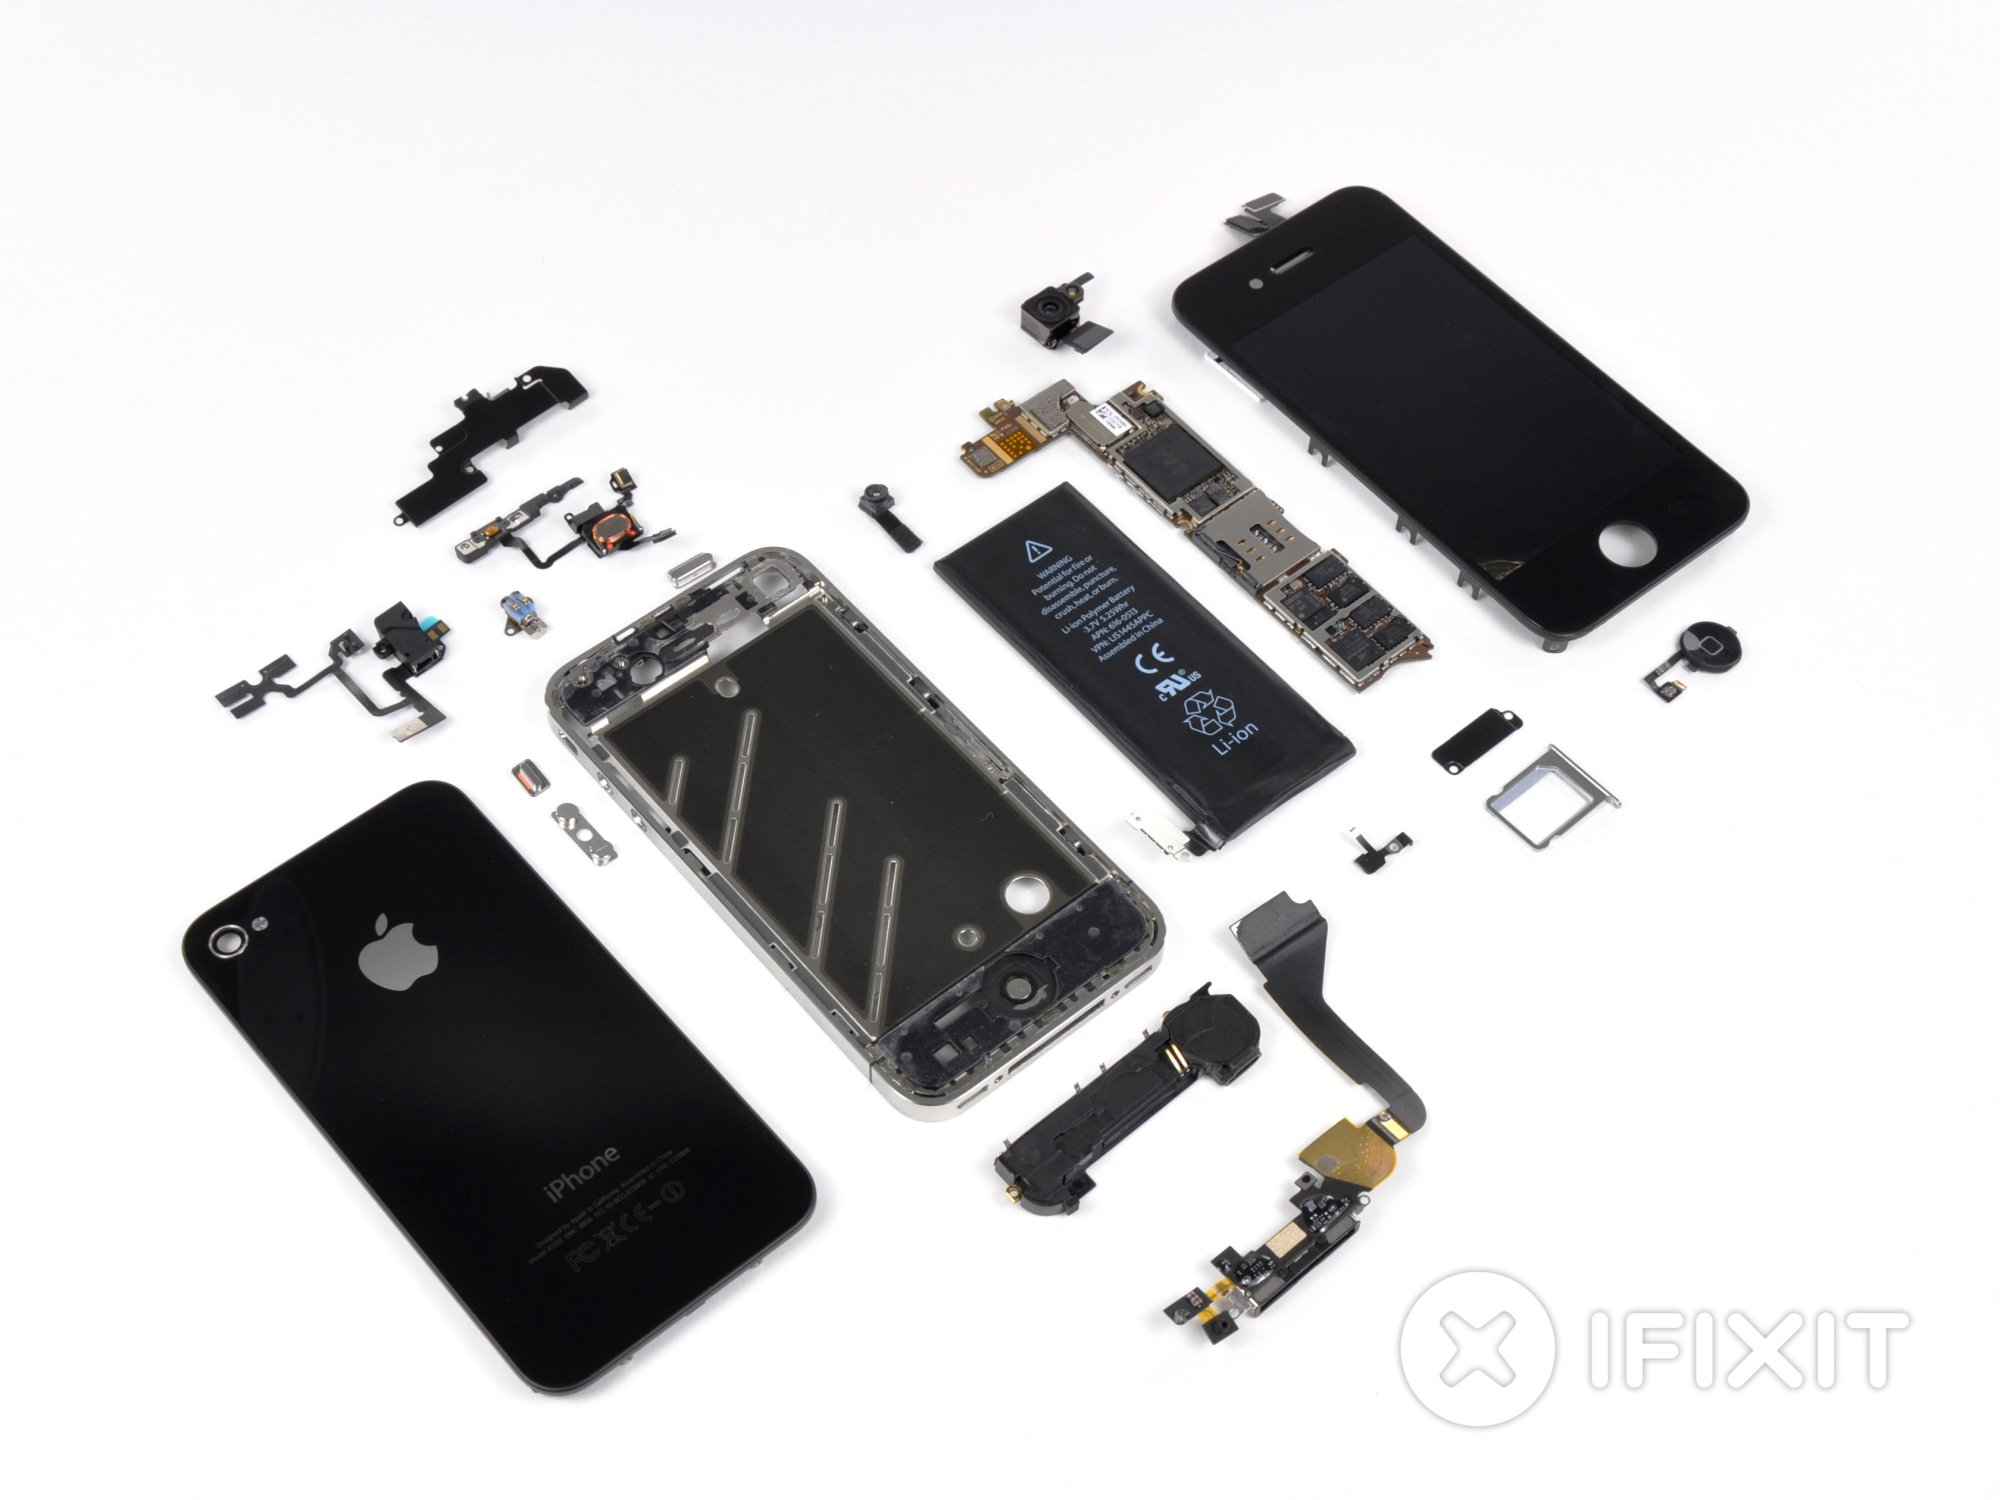 hight resolution of iphone 4 teardown ifixit besides mini ipad 2 schematic diagram further iphone 5 parts diagram